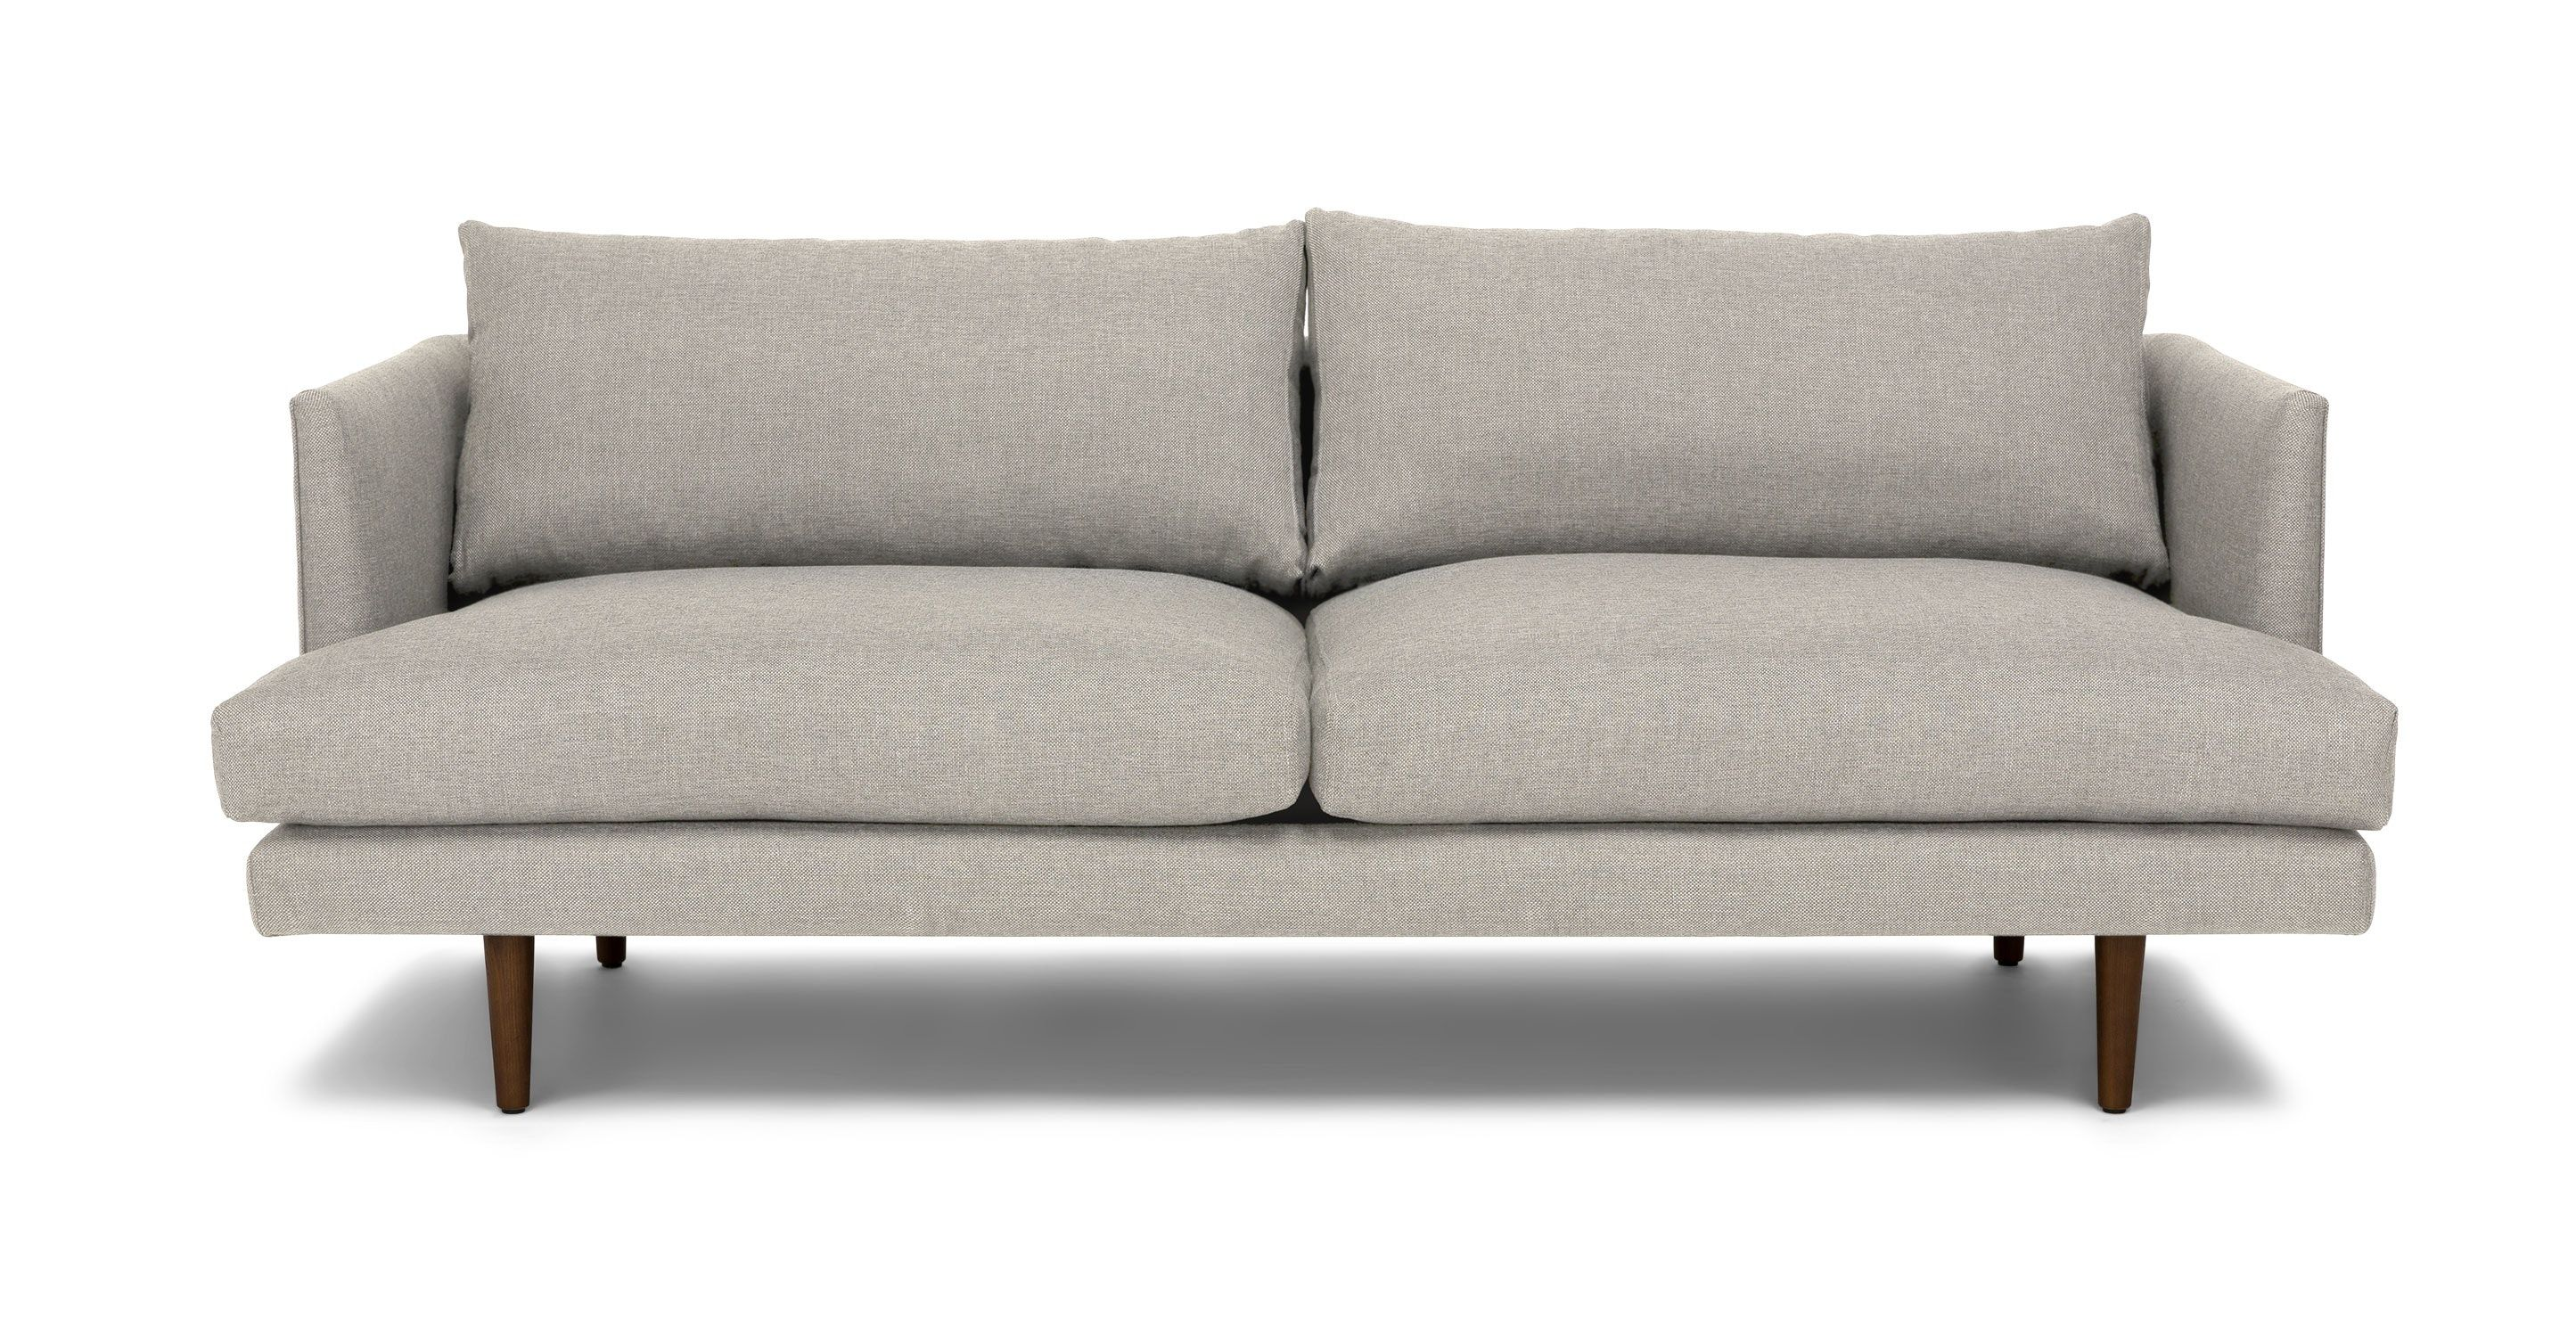 Light Gray Sofa With Solid Wood Legs Article Burrard Modern  # Muebles Saphire